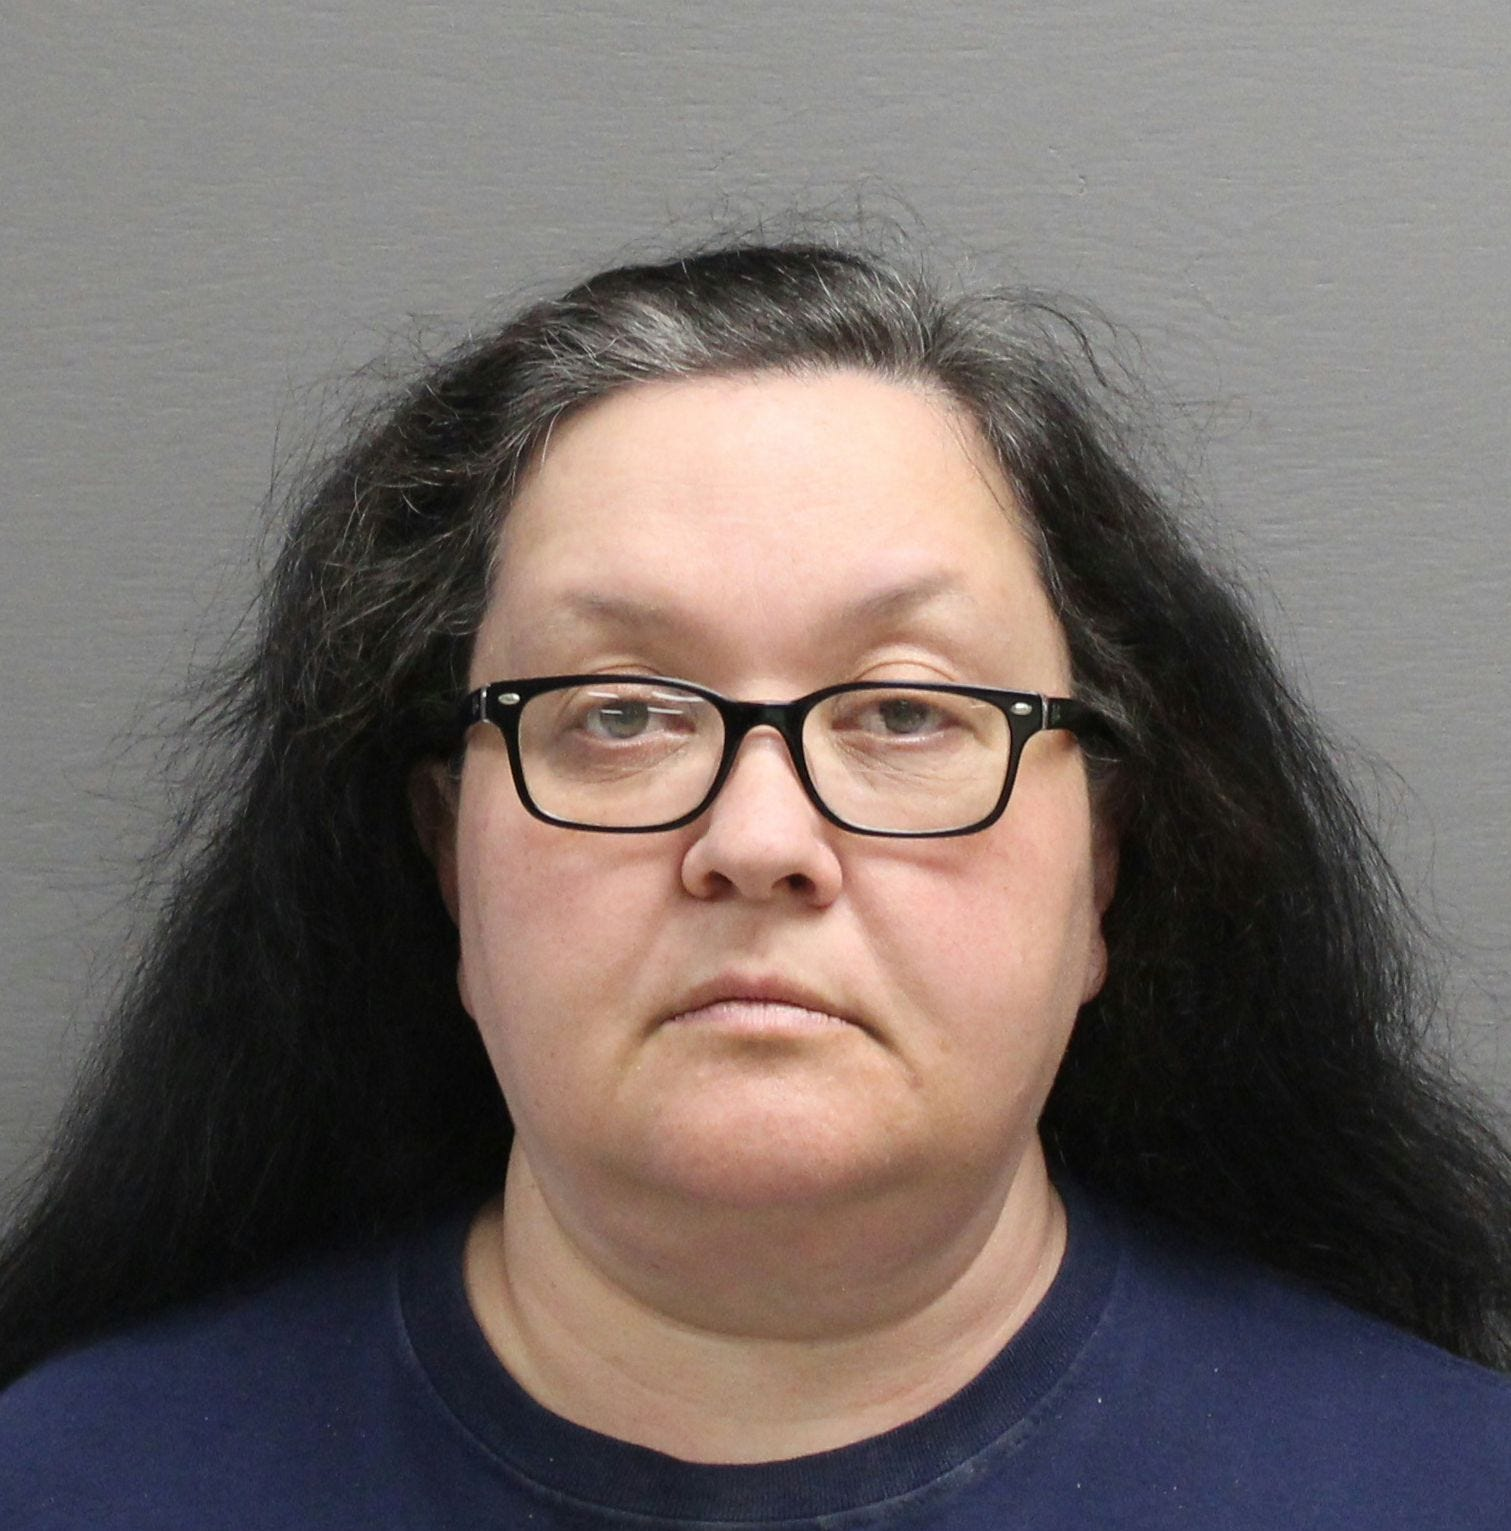 Ex-employee accused of stealing $4k from Great Falls Goodwill